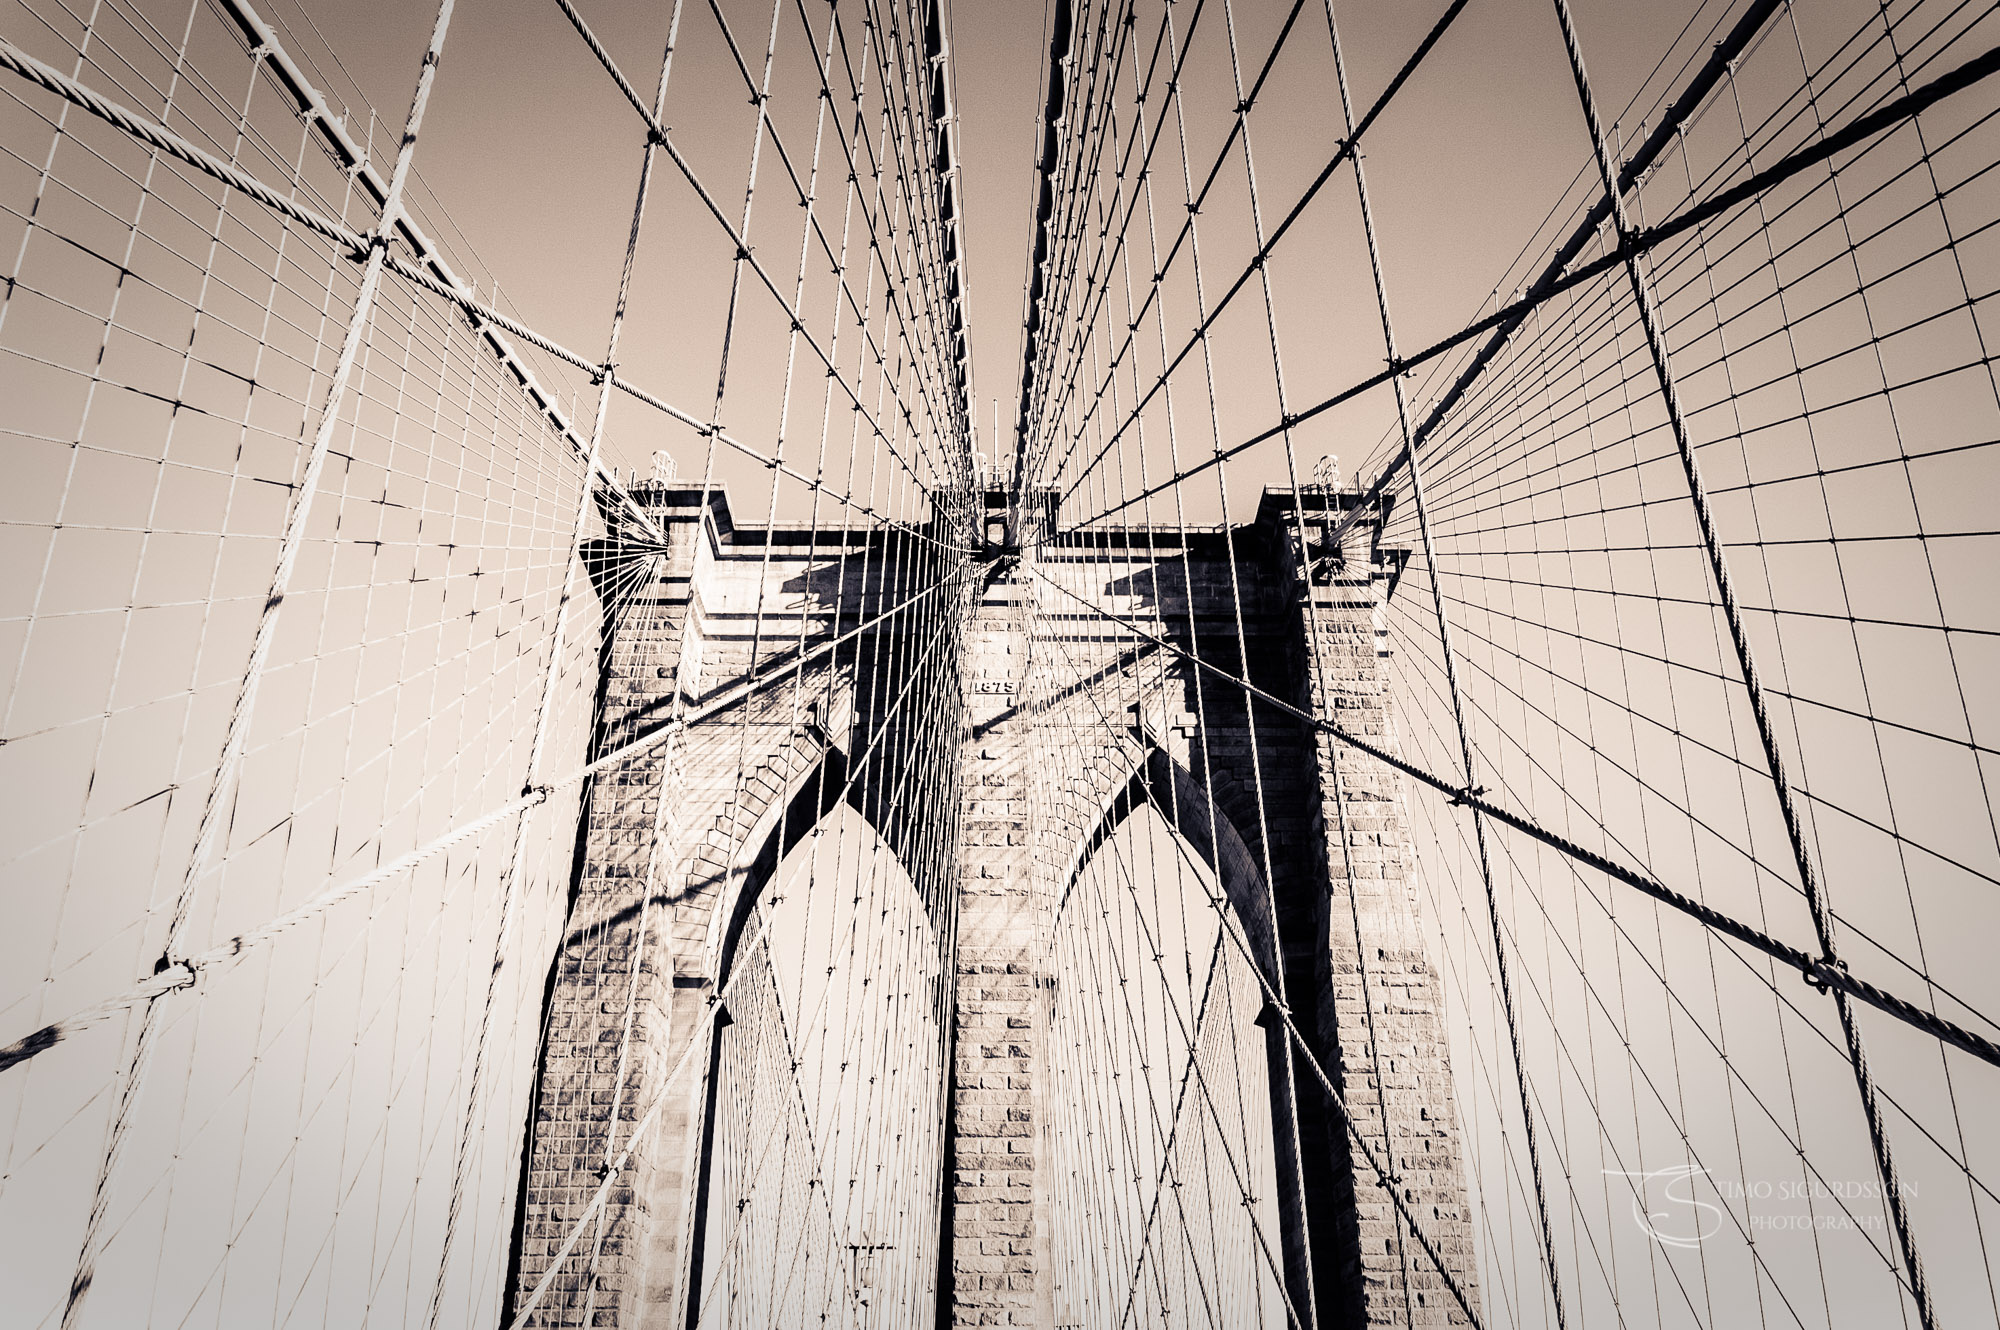 New York City, USA. Brooklyn Bridge.